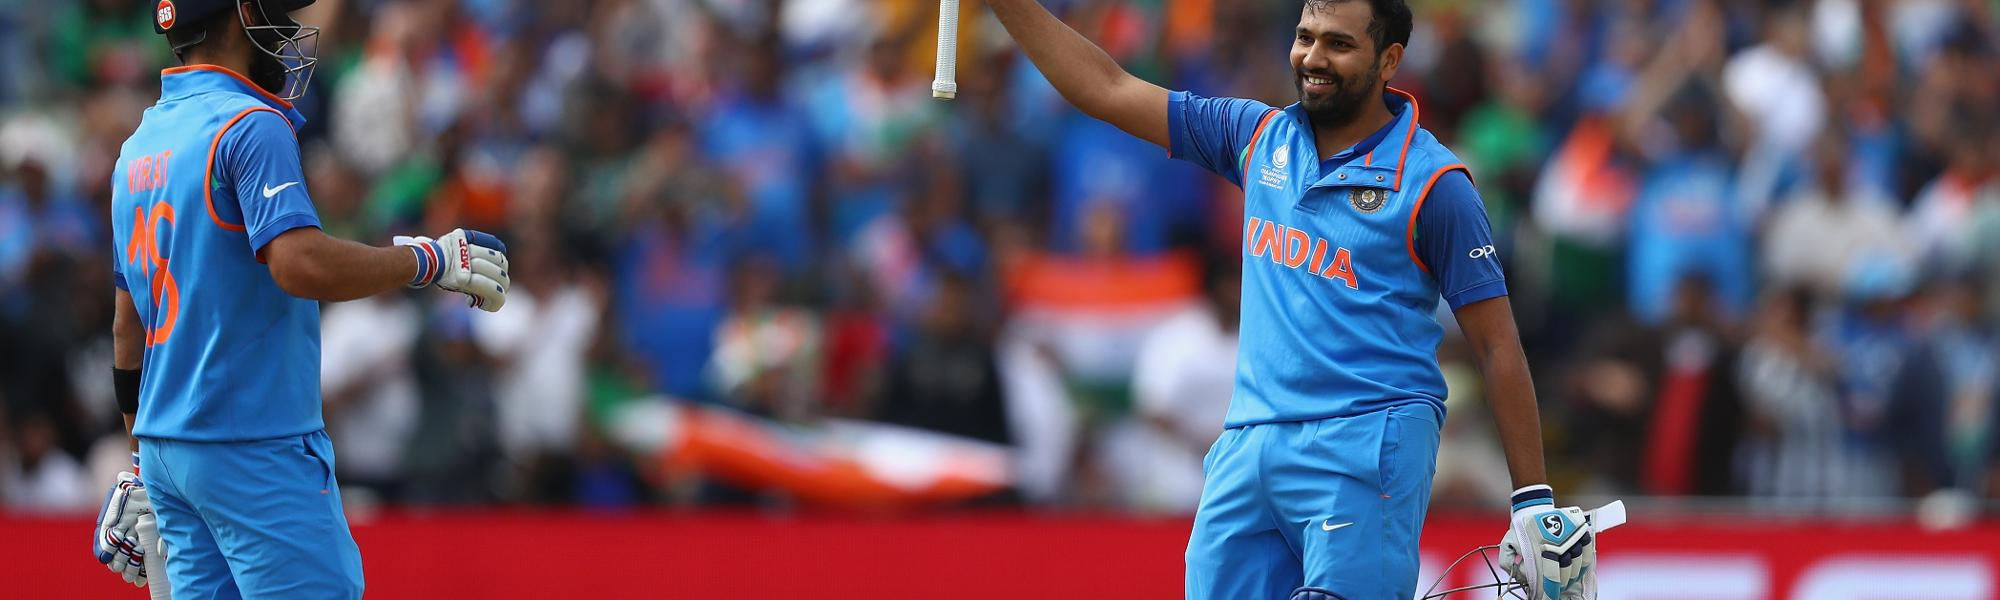 A match-winning century by Rohit Sharma saw India home and through to the finals of the Champions Trophy 2017